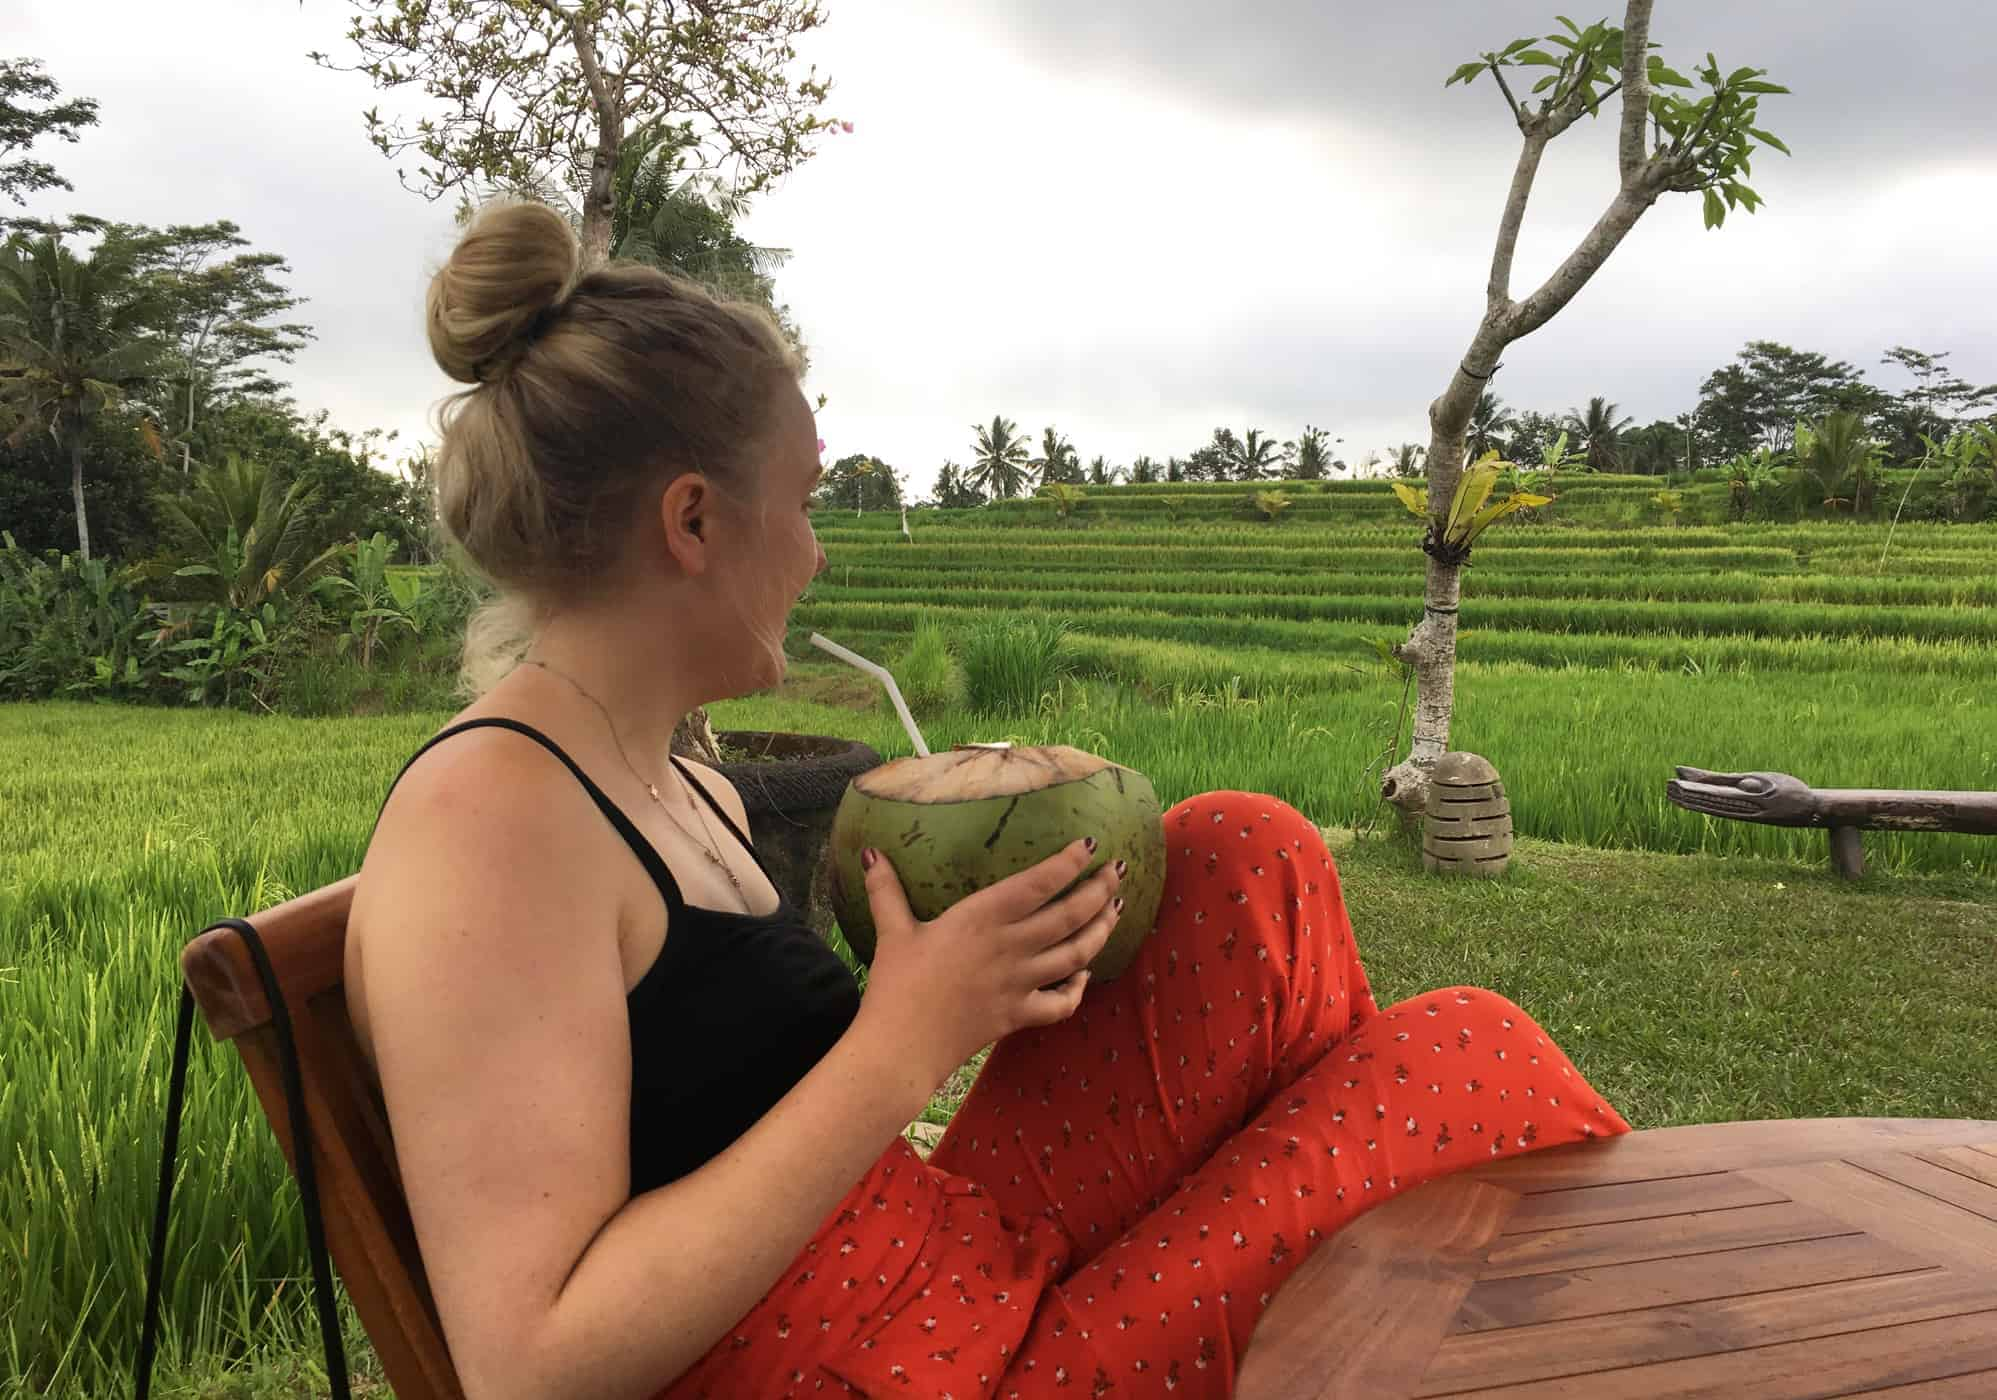 Sipping a coconut in Bali, Indonesia.